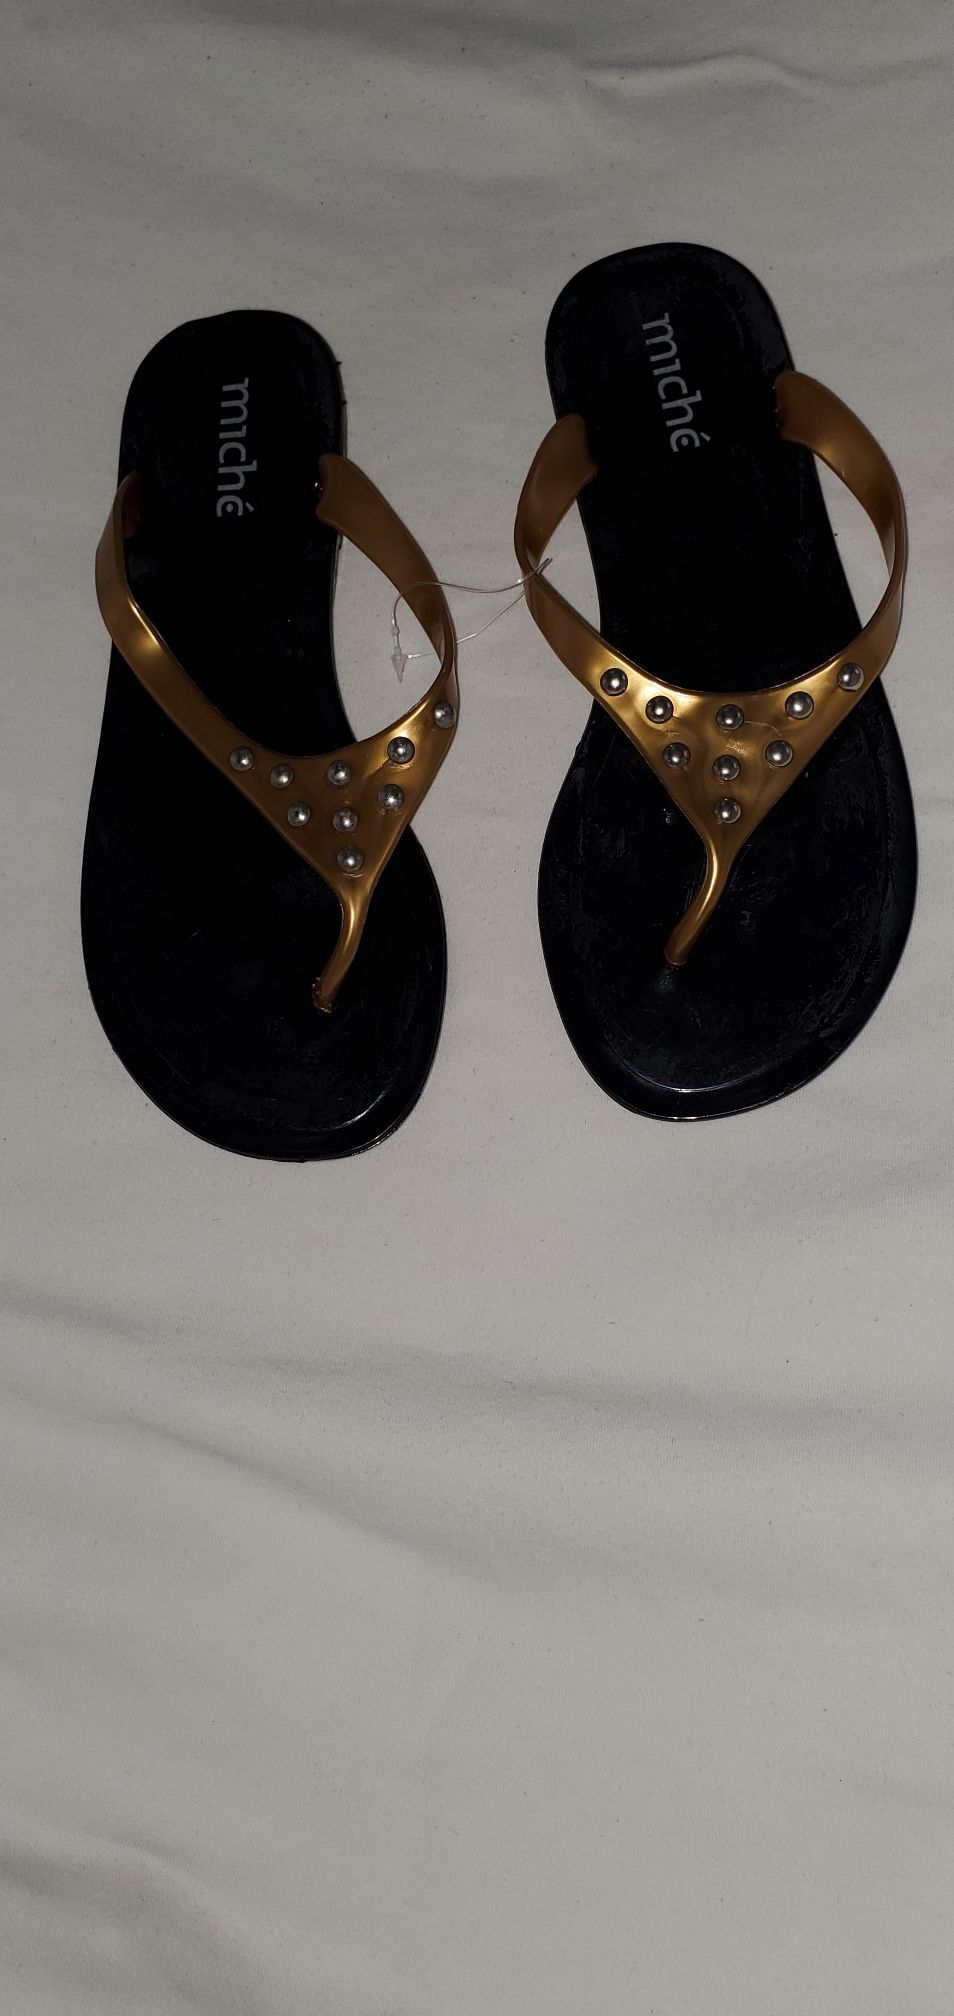 Woman slip on/sandals $5 only